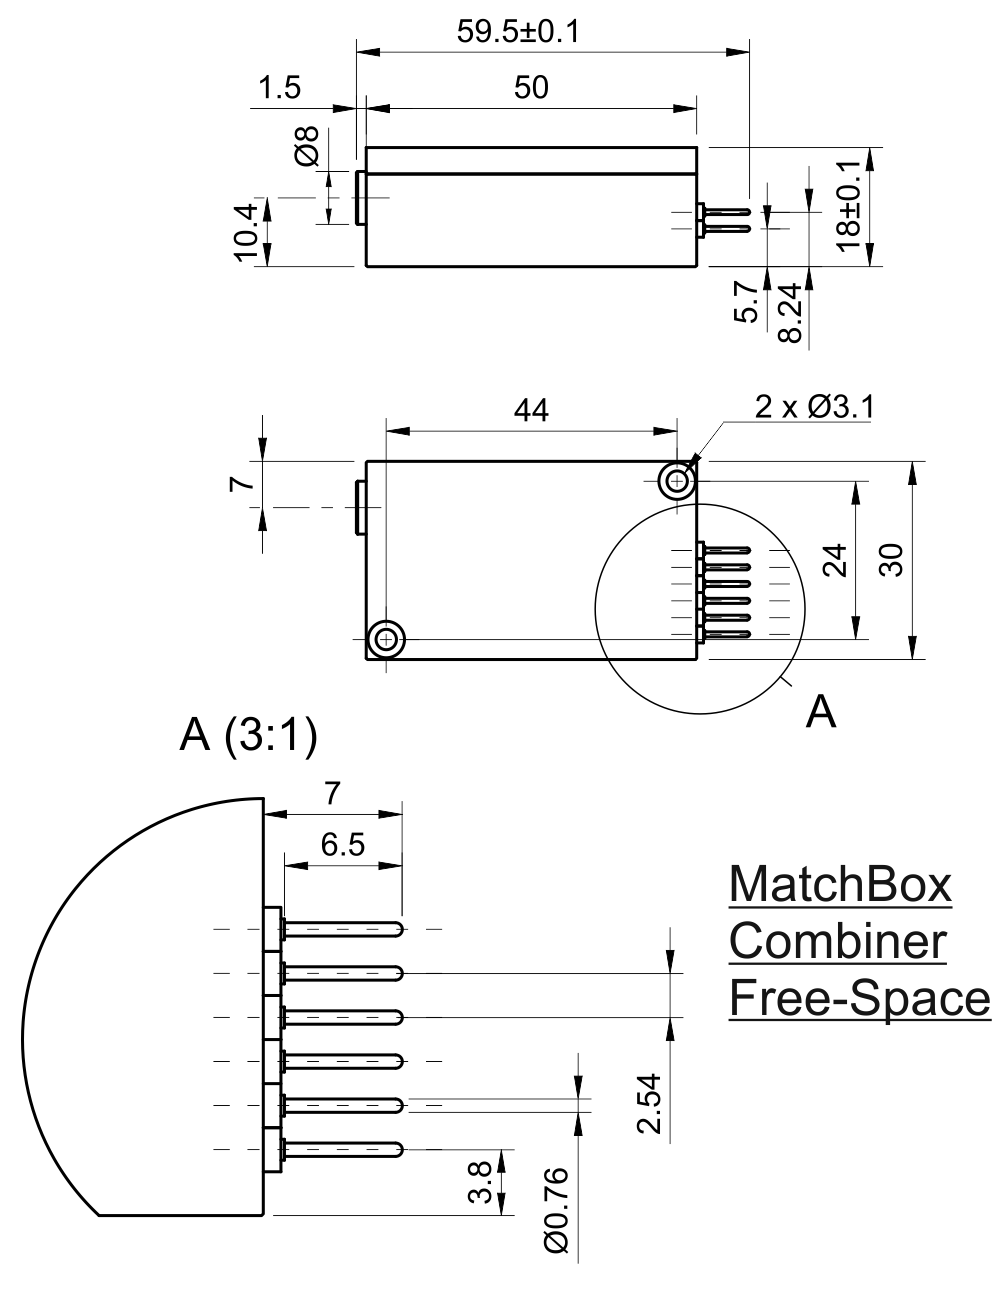 Drawing of Diode Laser Combiner; Free-space (405 nm, 488 nm, 638 nm)